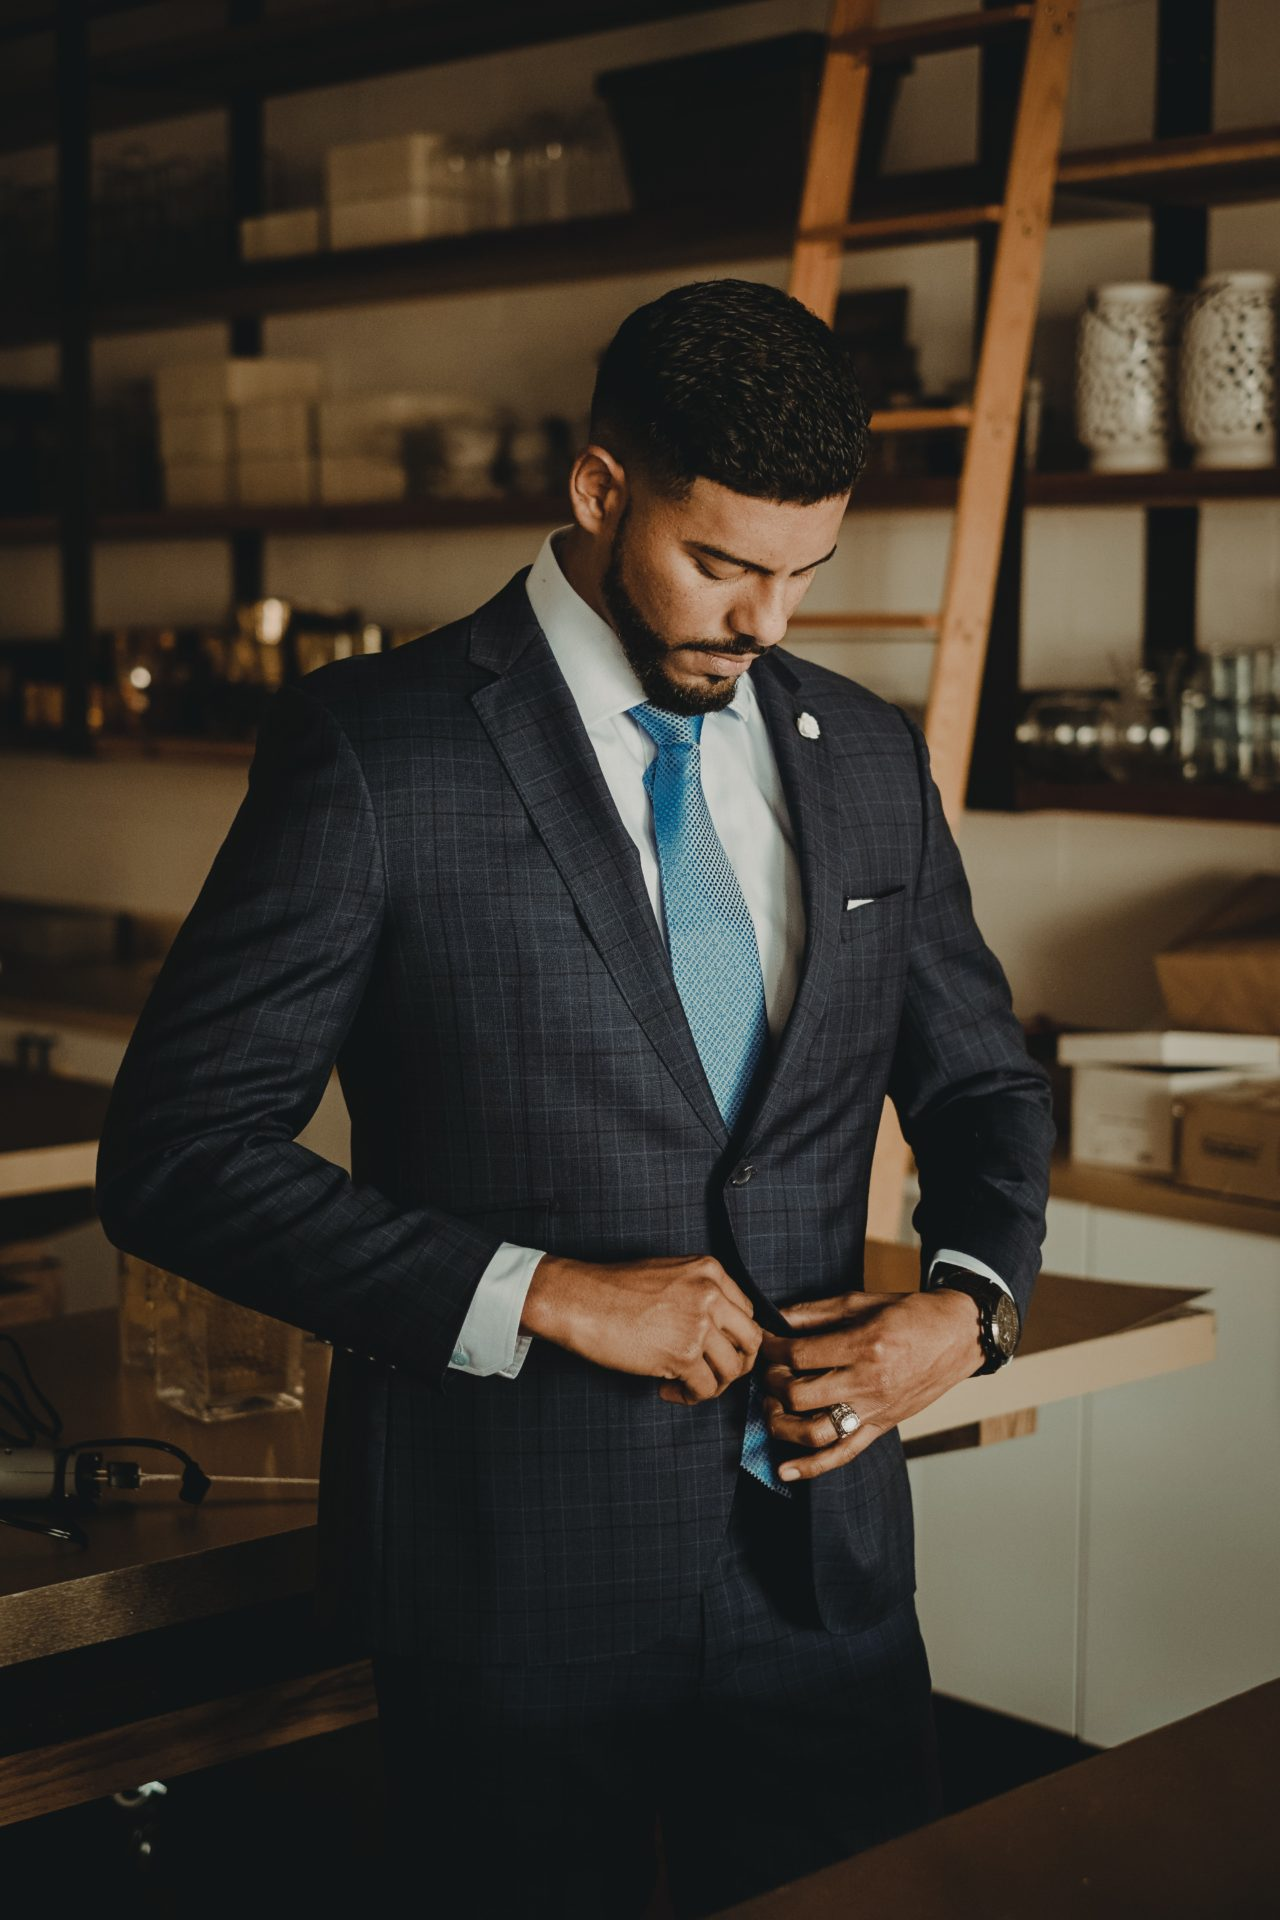 Man with beard standing up buttoning up suit with blue tie